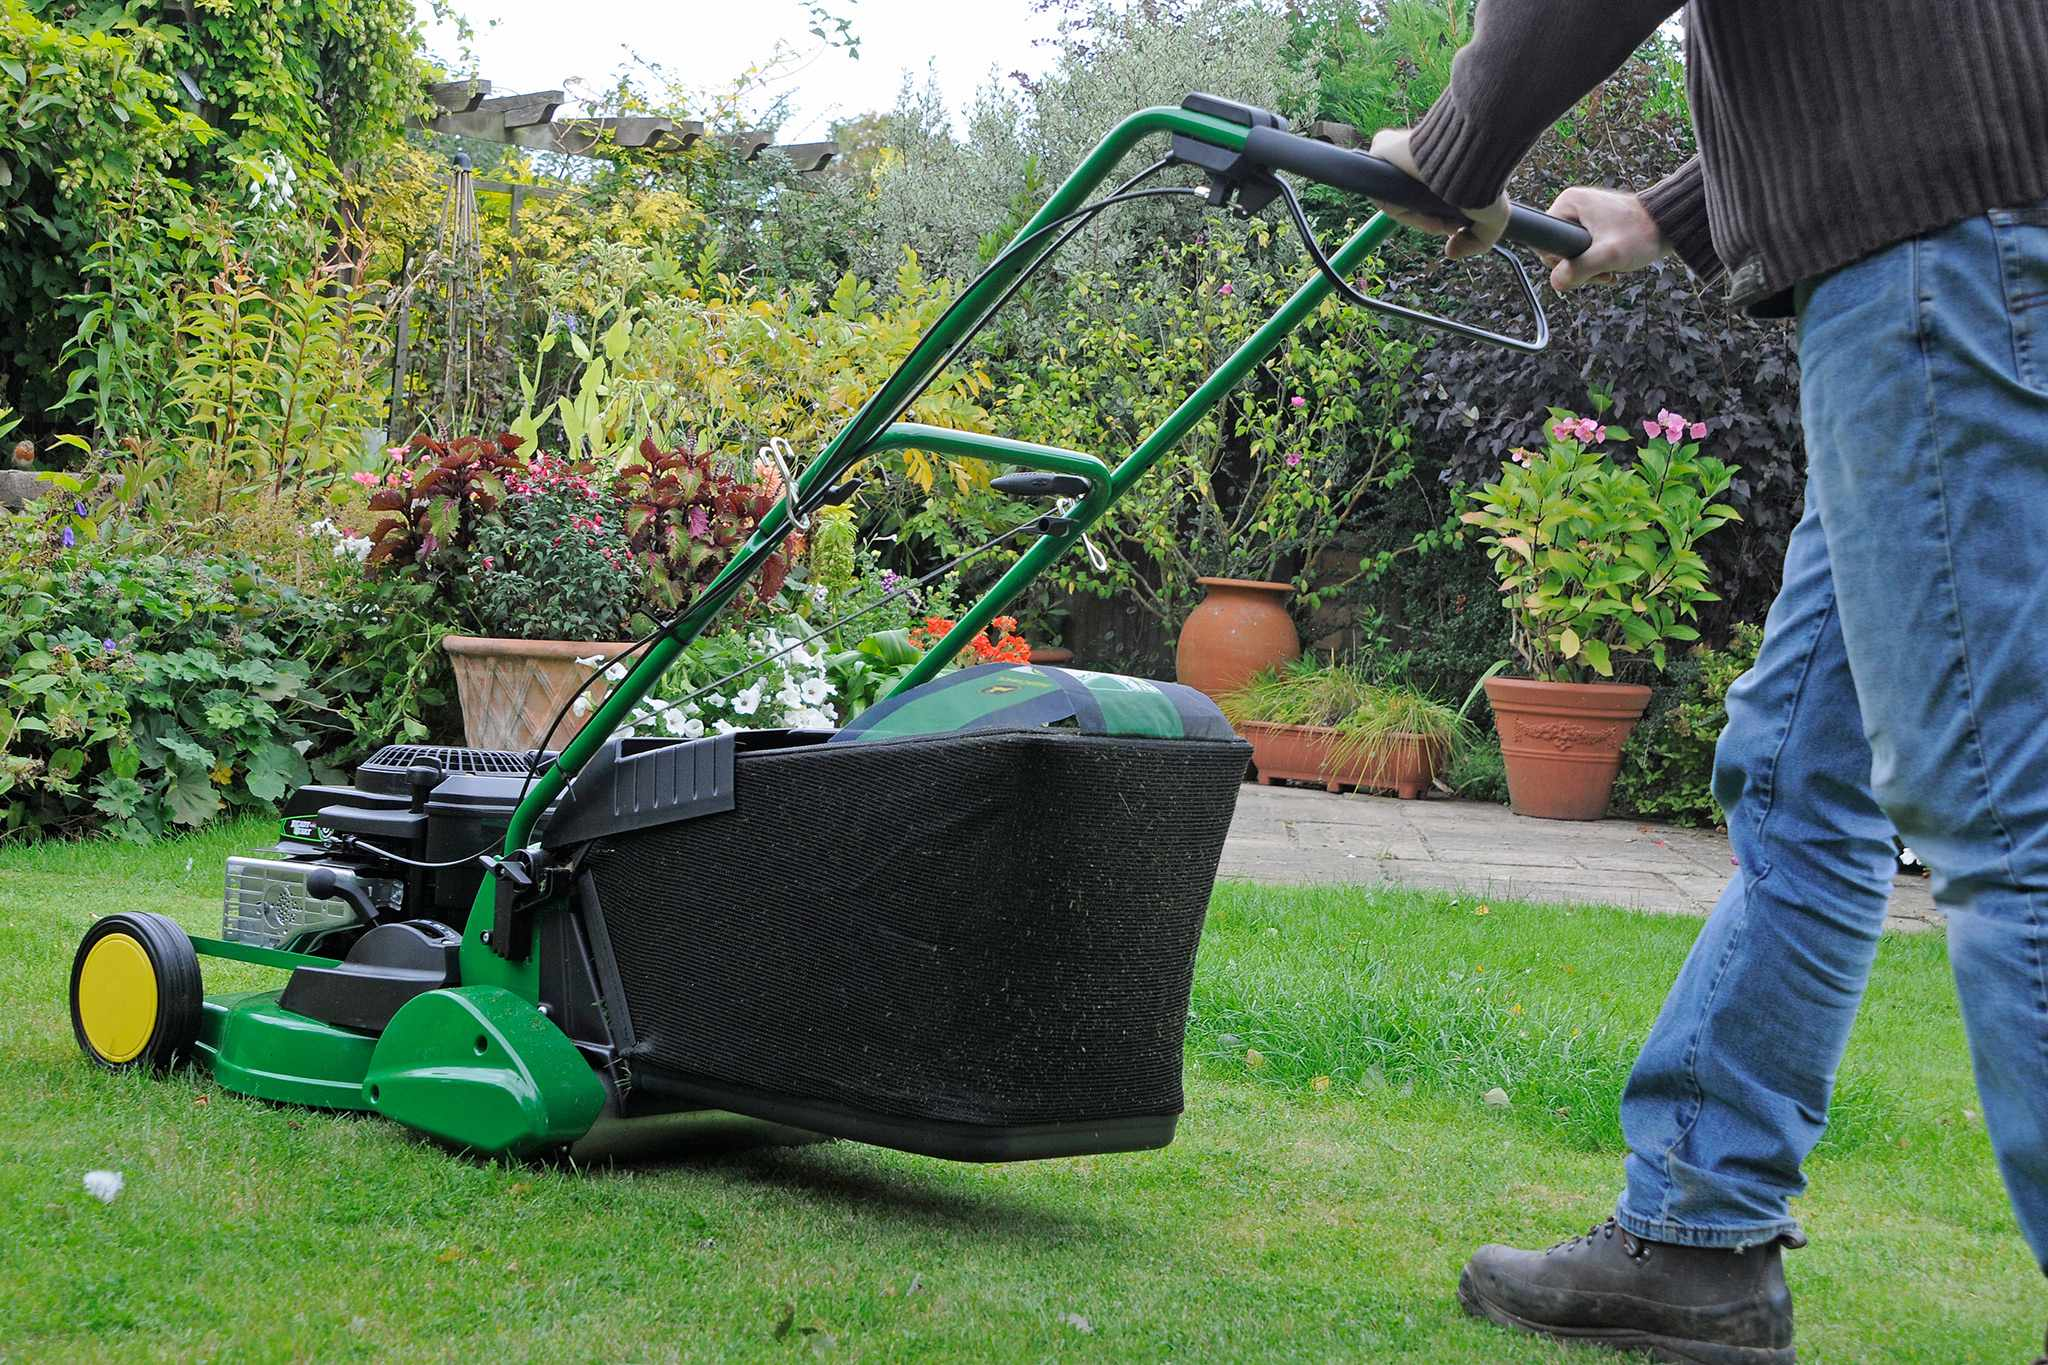 Mowing a lawn with a petrol mower